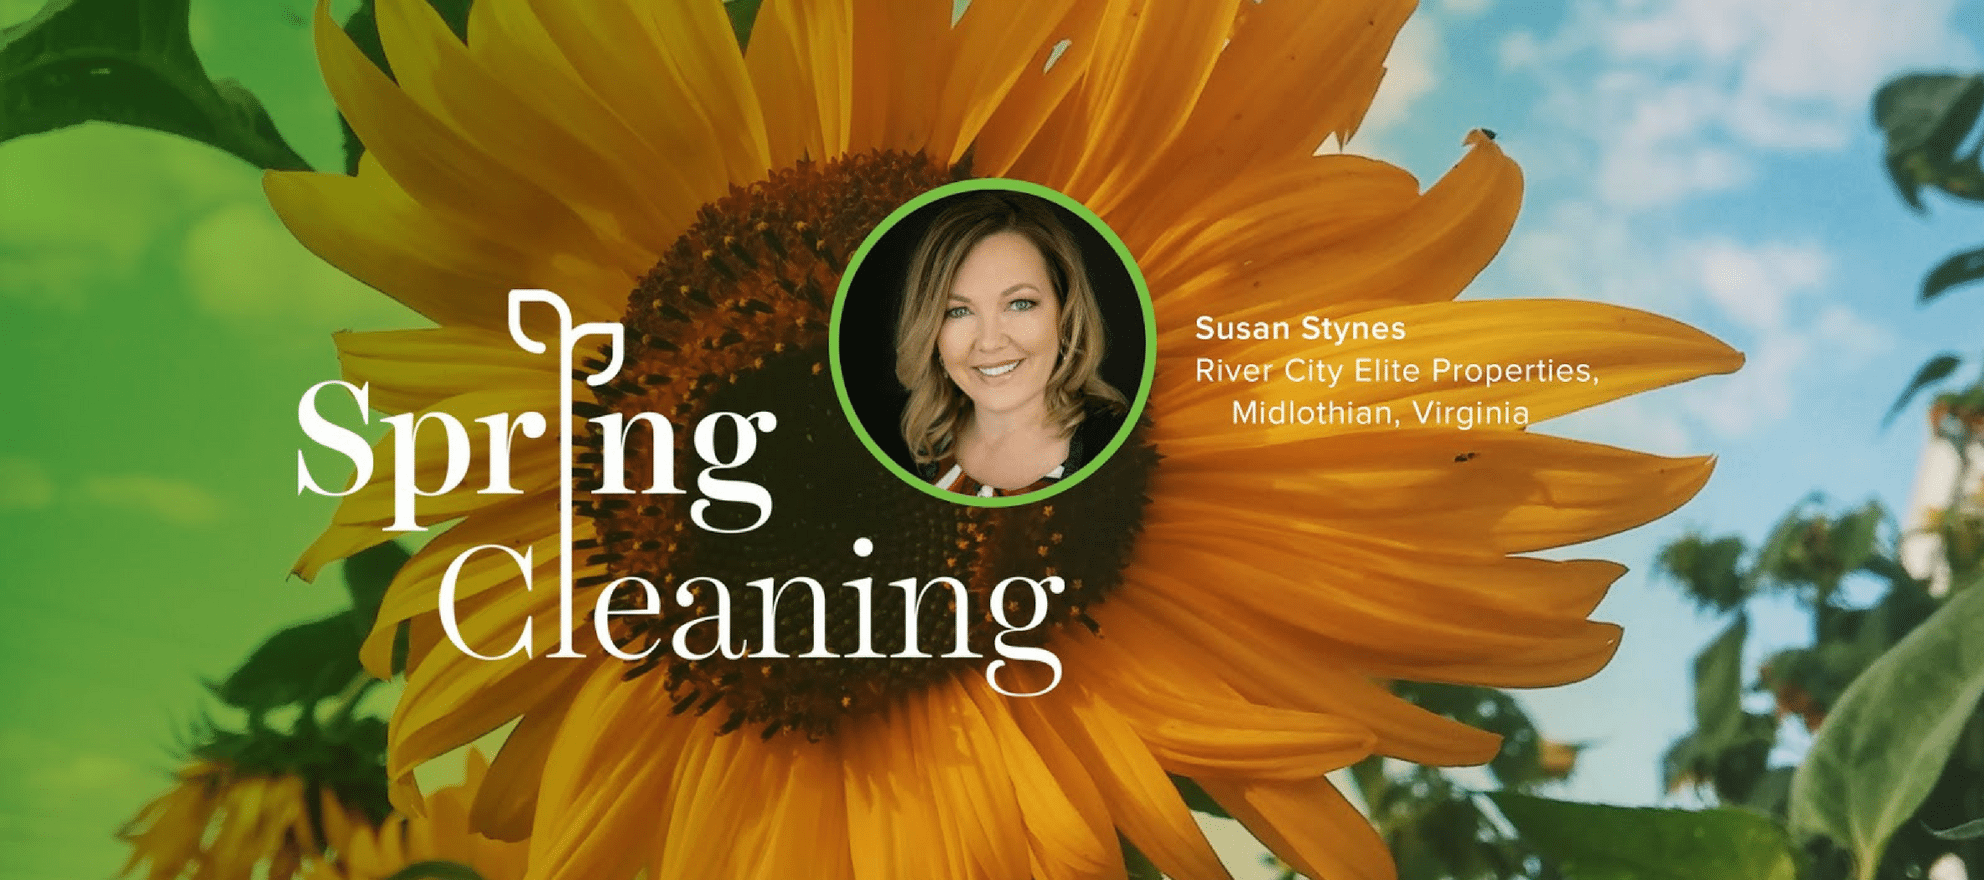 Spring Forward, Susan Stynes, Spring cleaning